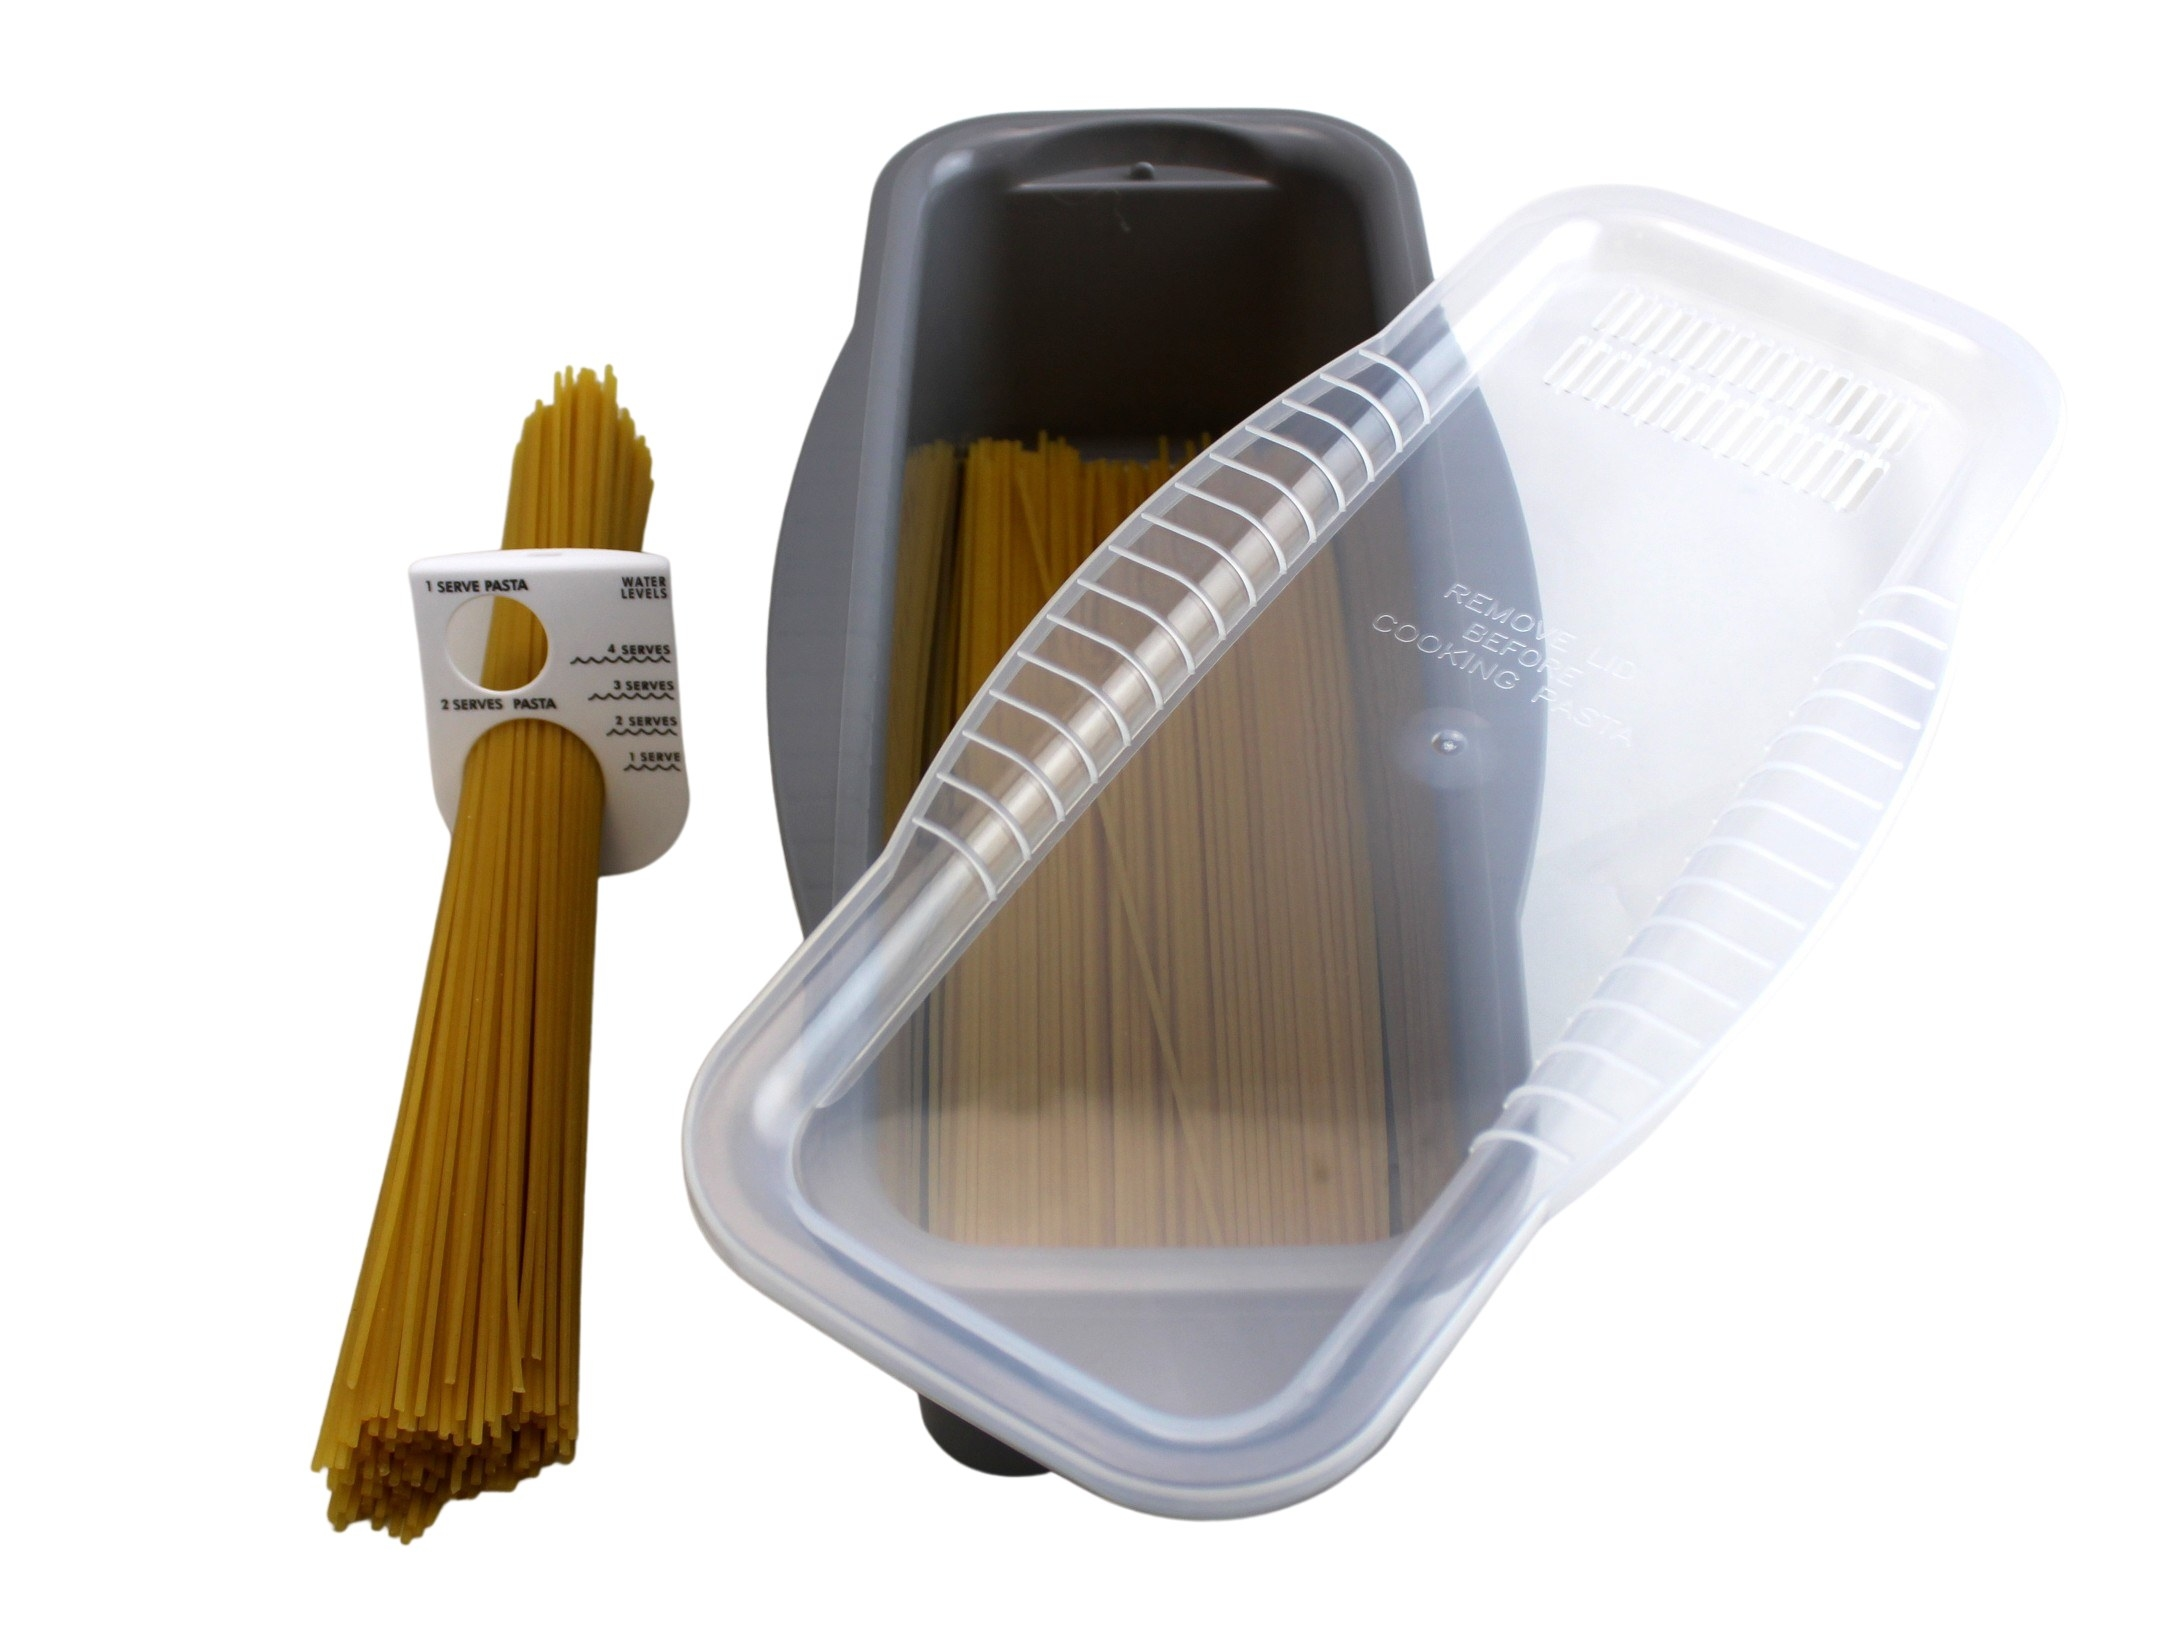 deep, rectangular pan and clear acrylic lid with raw spaghetti inside of it, along with a small measuring tool with two different sizes holes and the recommended amount of water to add per serving